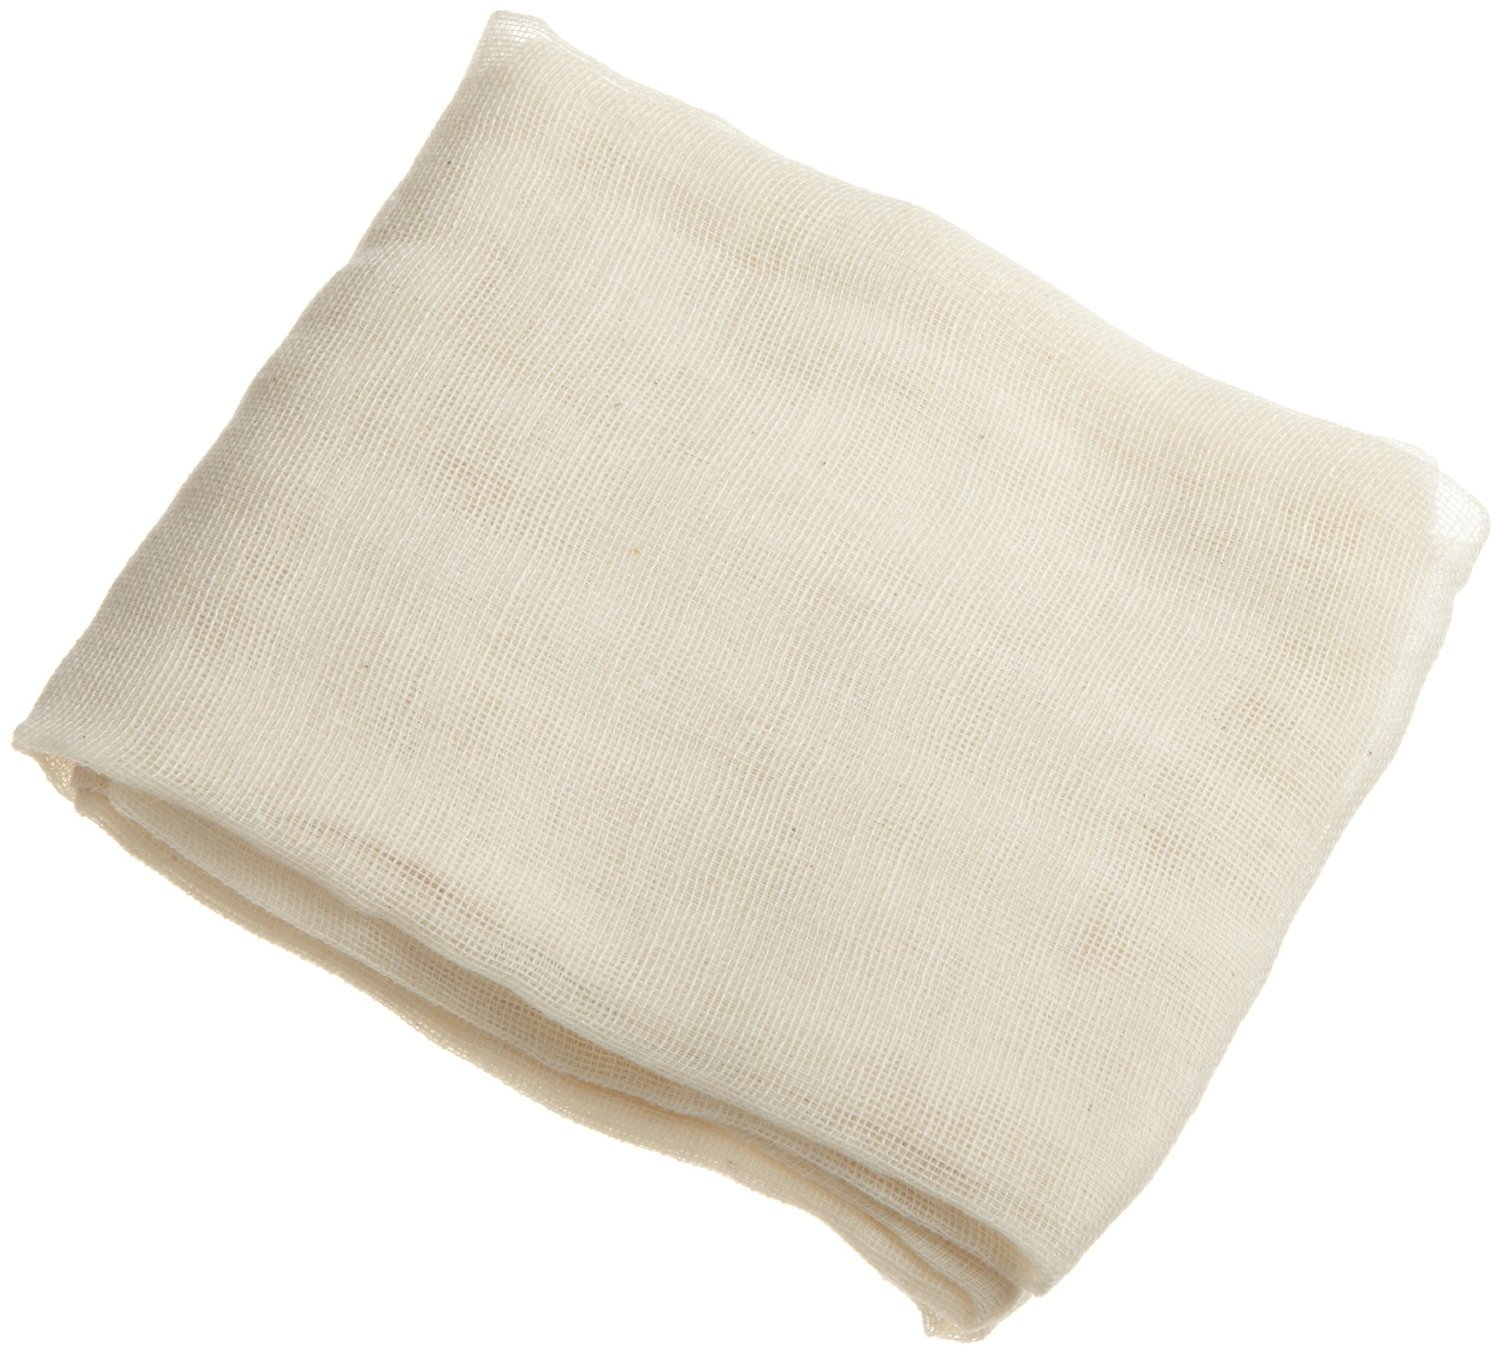 Unbleached Cheesecloth 9 Sq ft 100% Cotton Reusable-Great Filter or Strainer for Cheese/Kombucha scoby/Glass jar/Wine making